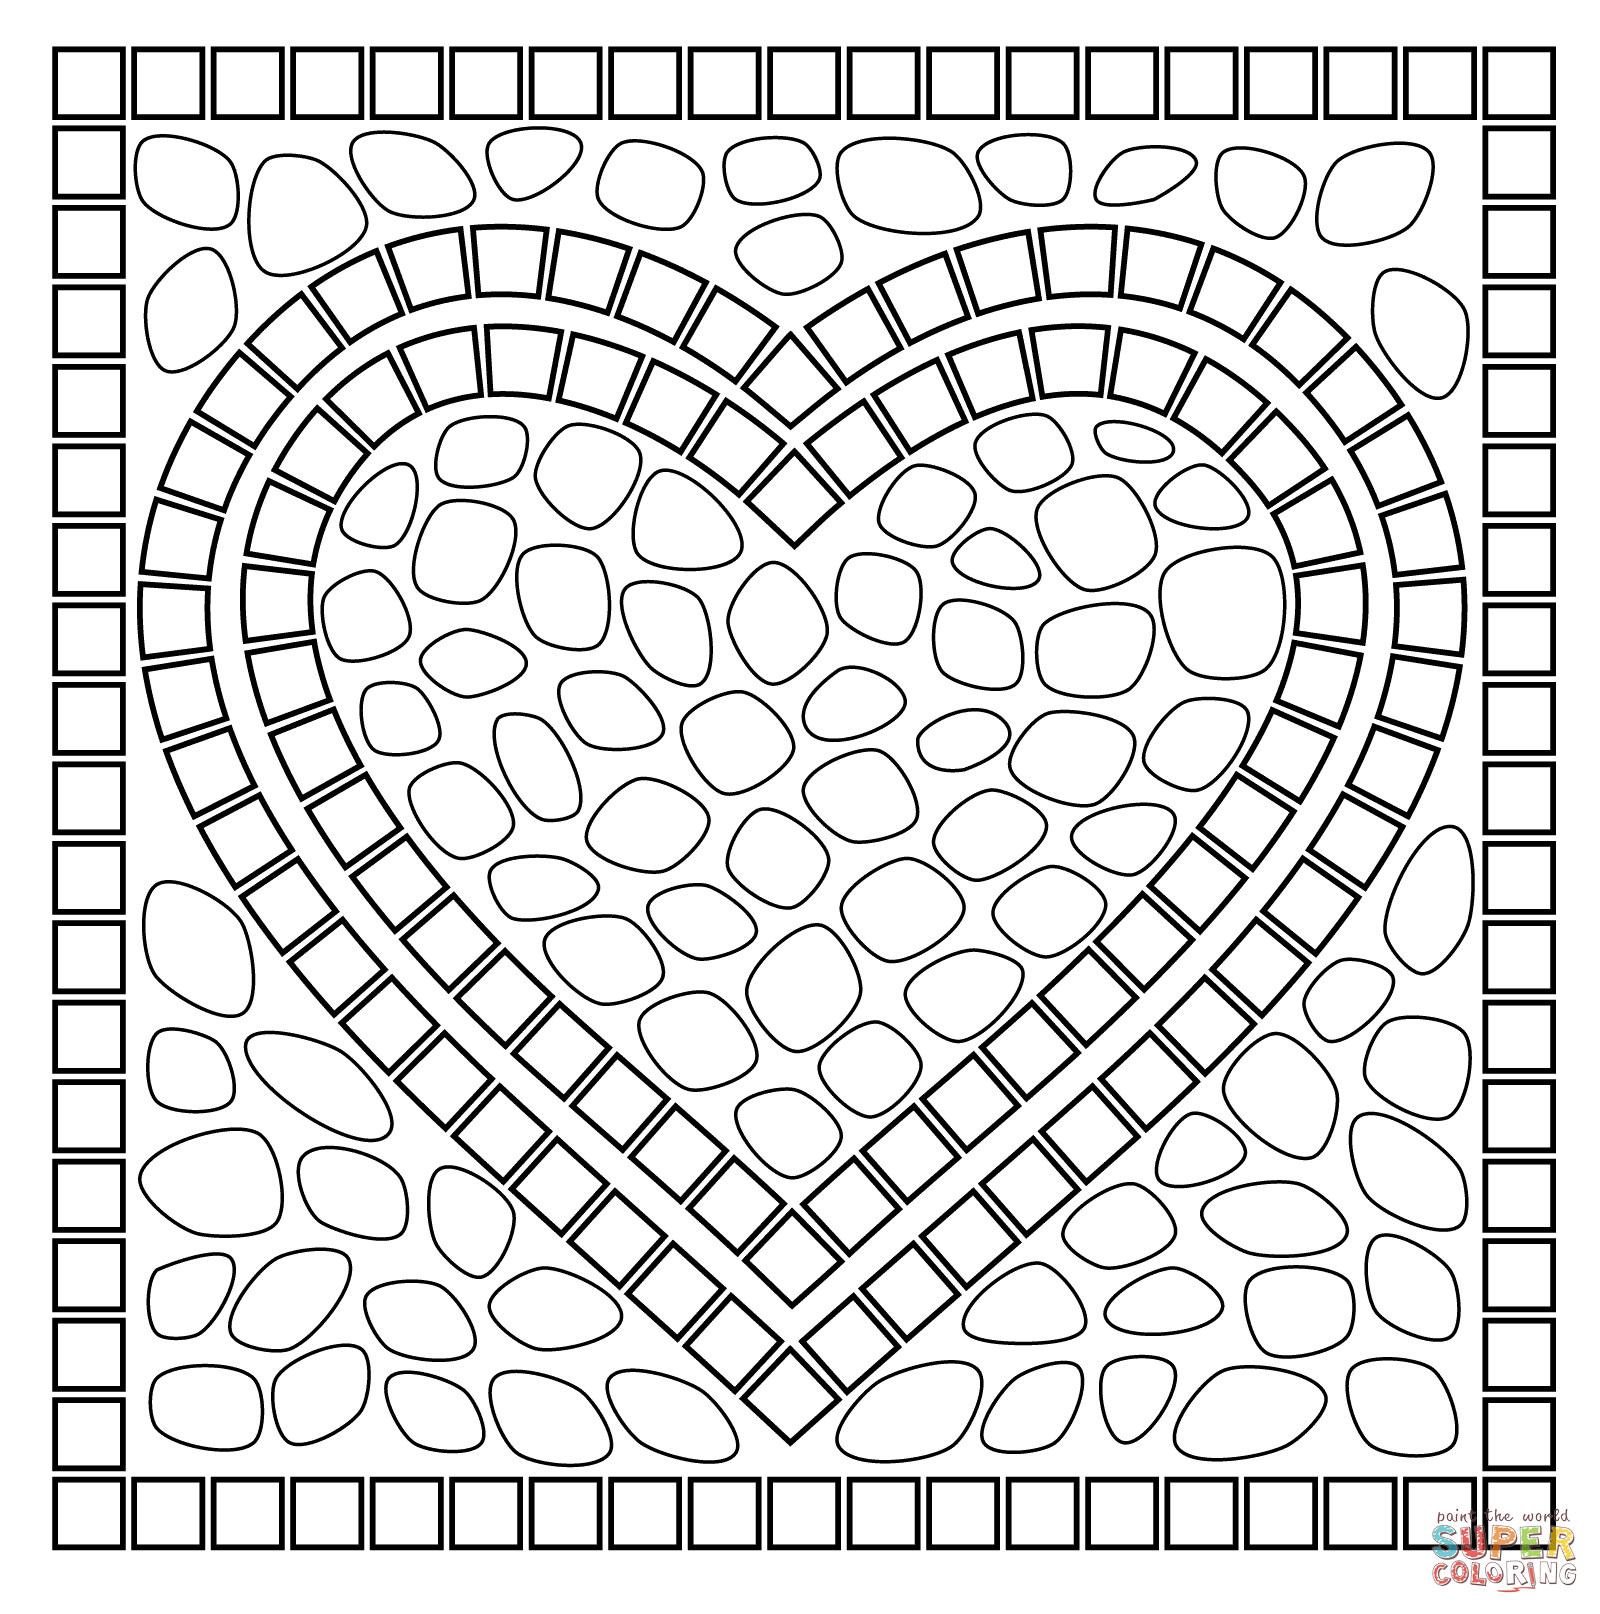 free mosaic patterns to color free mosaic patterns to print mosaic mosaic pattern to patterns color free mosaic